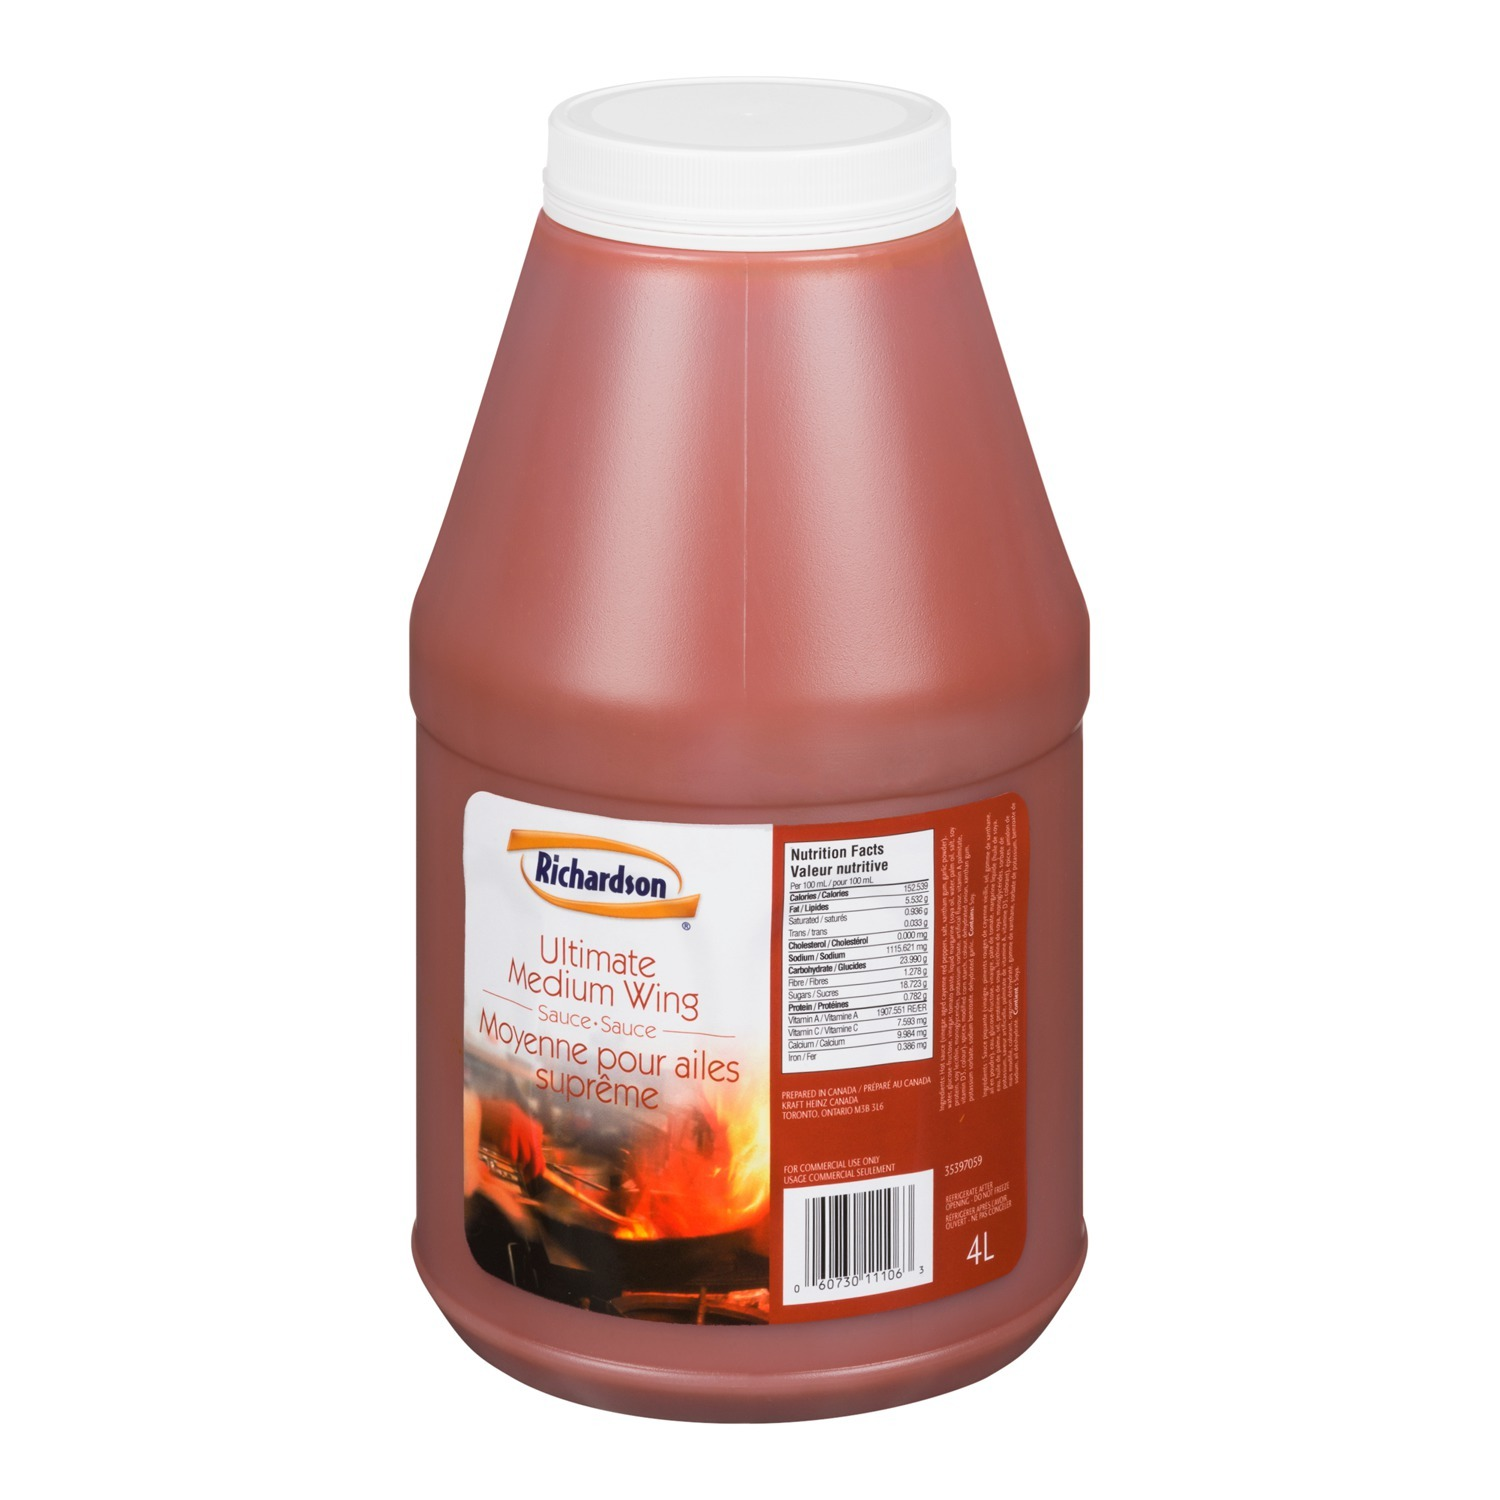 RICHARDSON Ultimate Medium Wing Sauce 4L 2